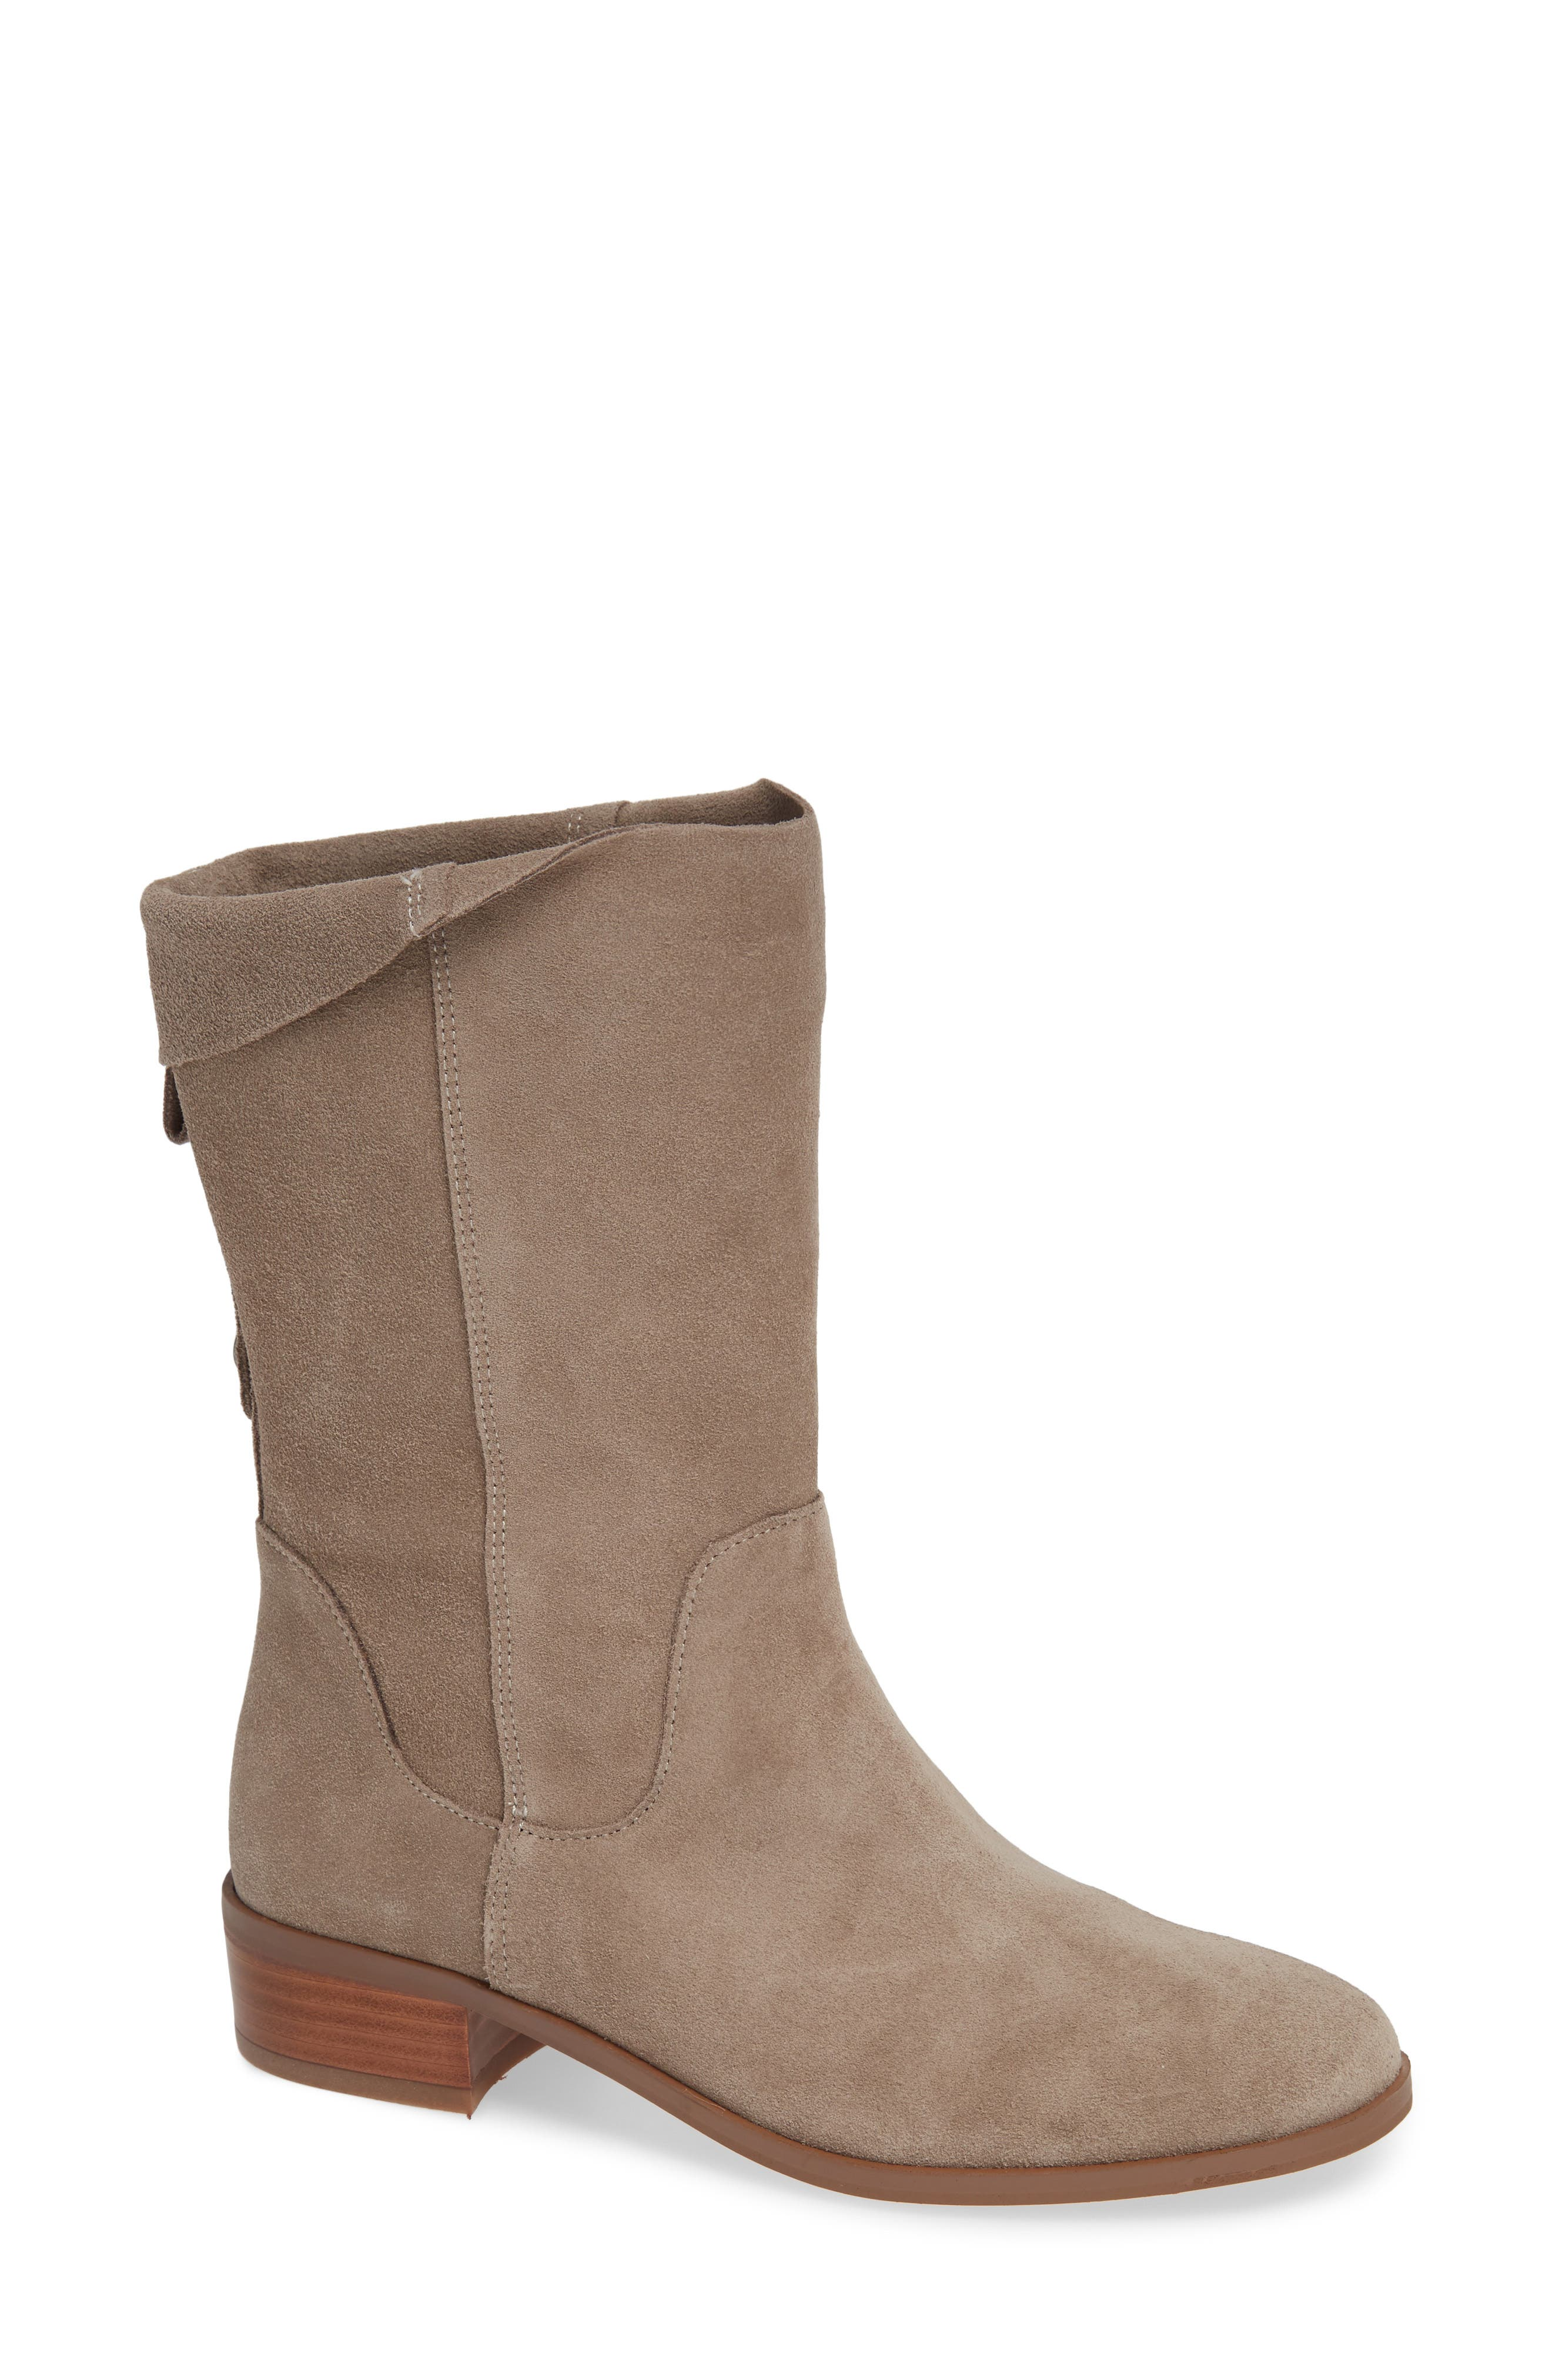 Calanth Bootie,                         Main,                         color, MUSHROOM SUEDE